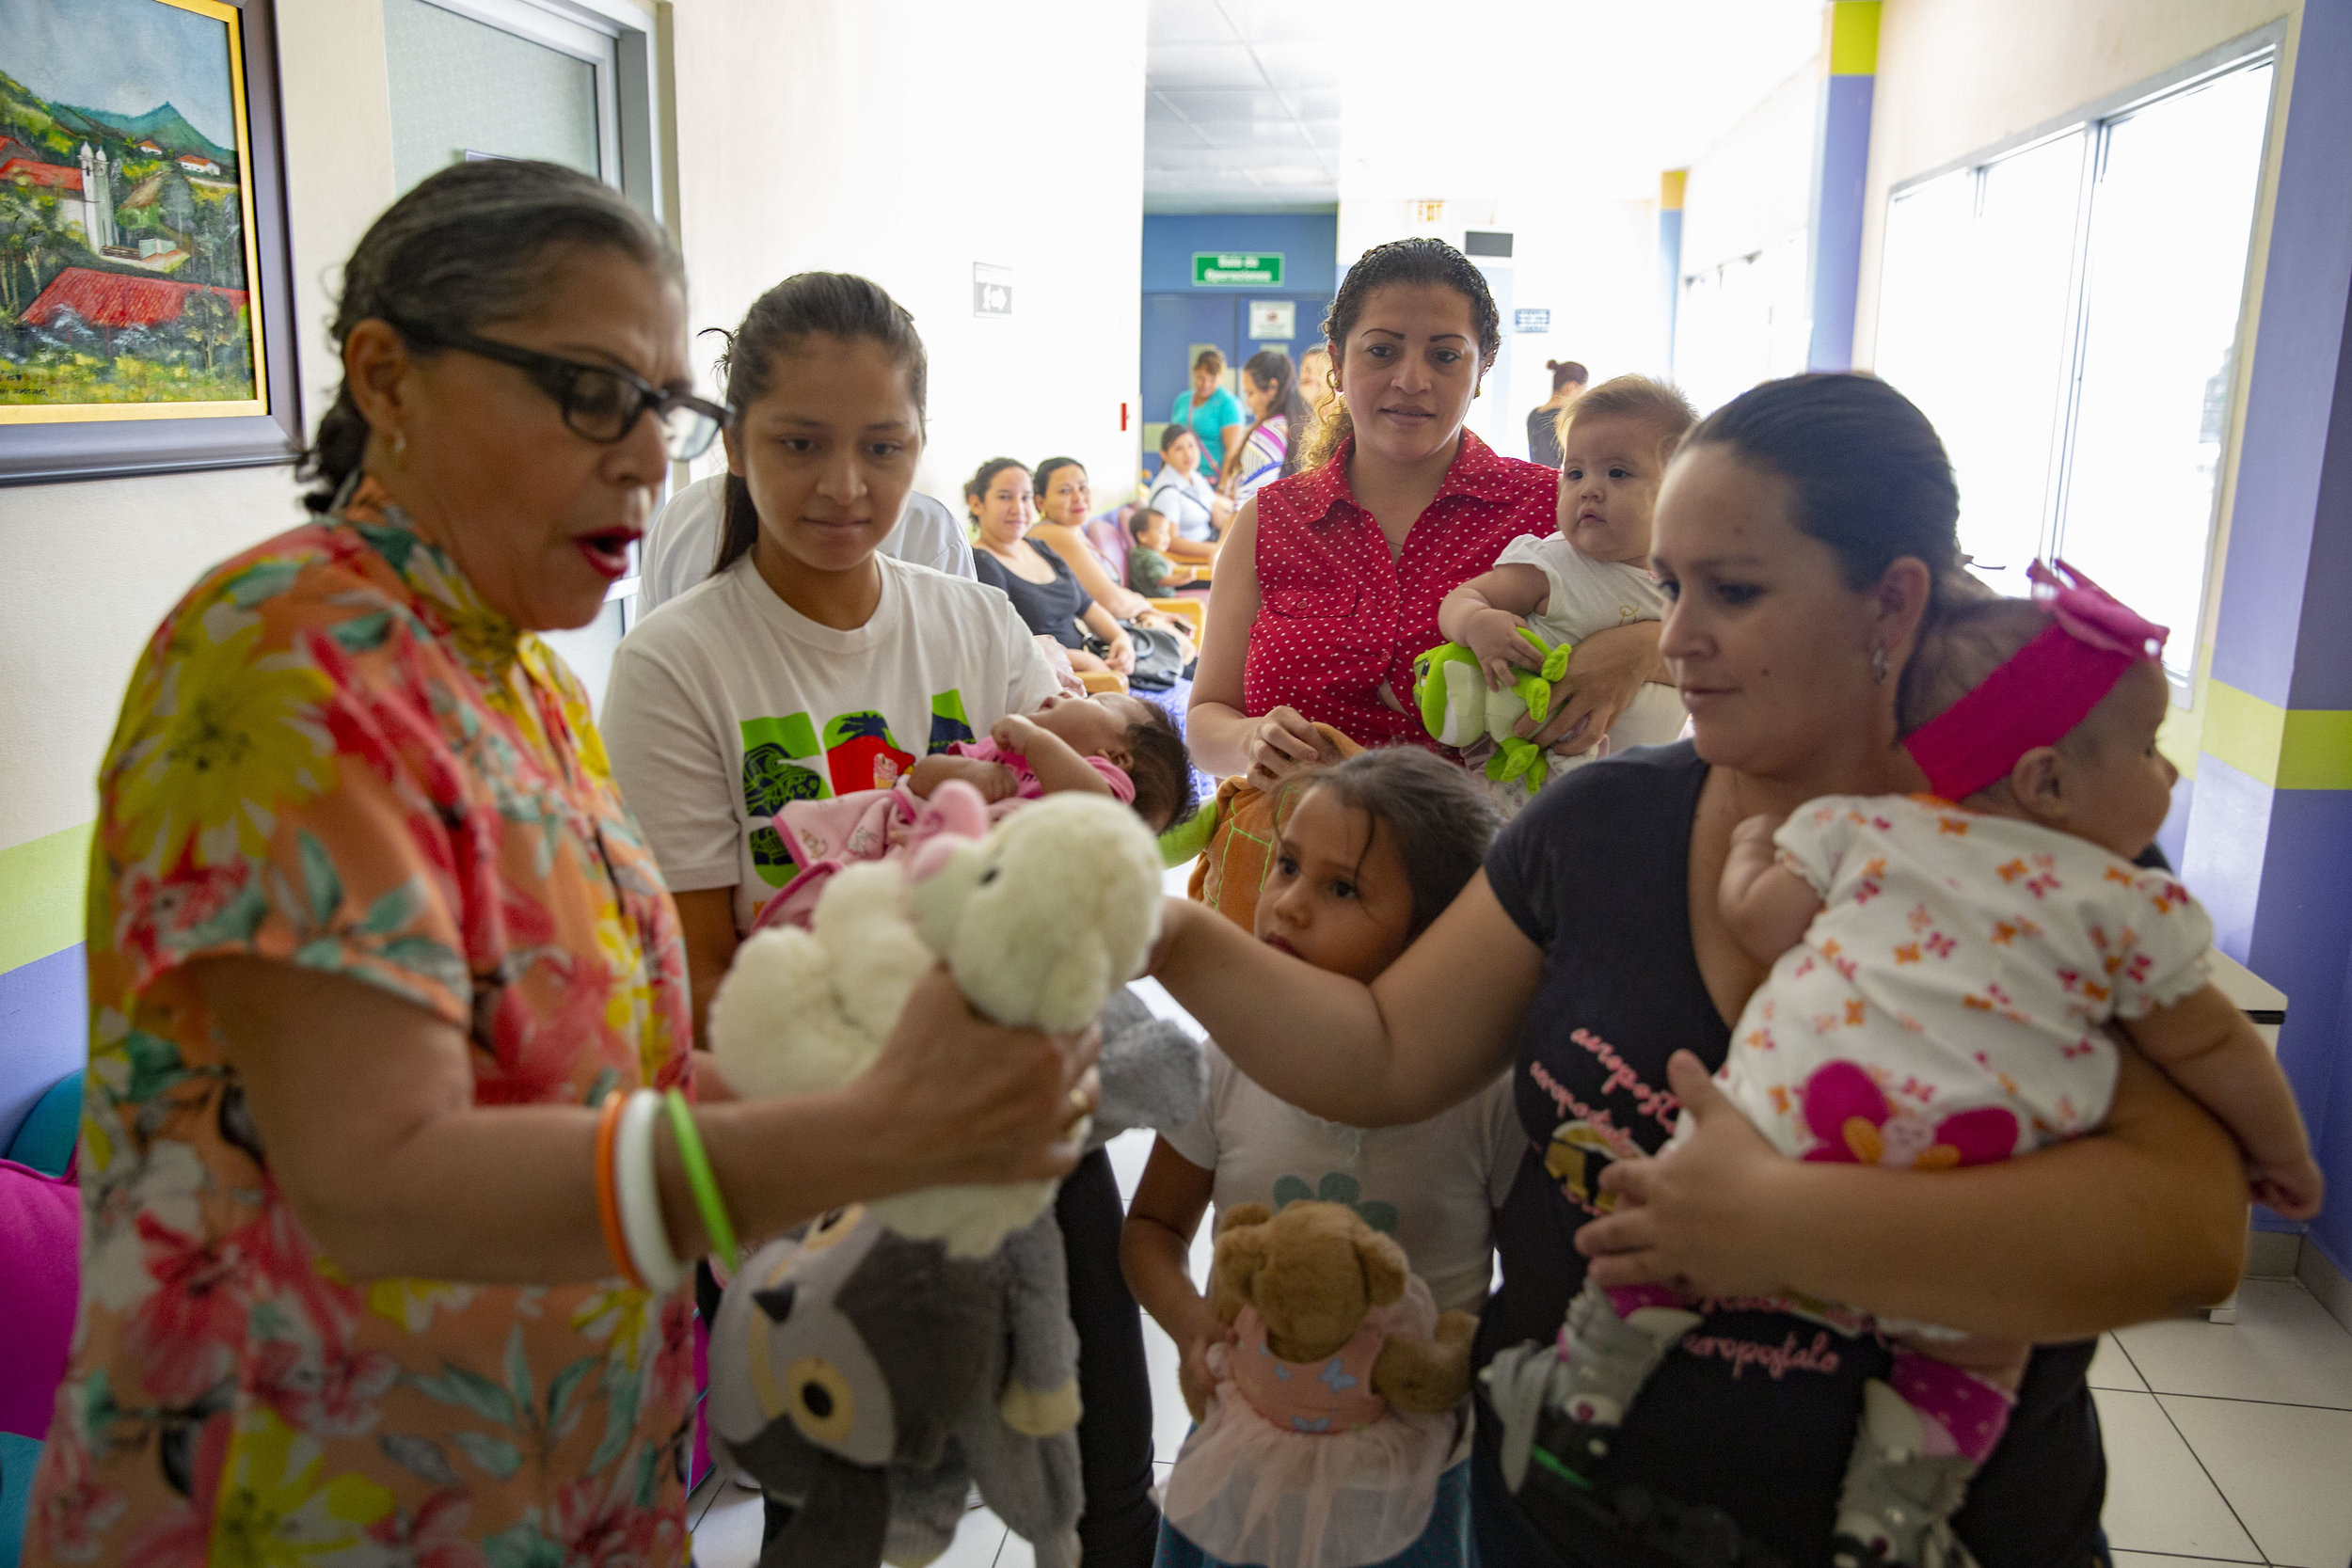 Amanda Restrepo, who has been working at the Ruth Paz hospital in San Pedro Sula since it opened, sell for few lempiras stuffed animals to the mothers waiting. It is a way for them to raise a little bit of extra funds.